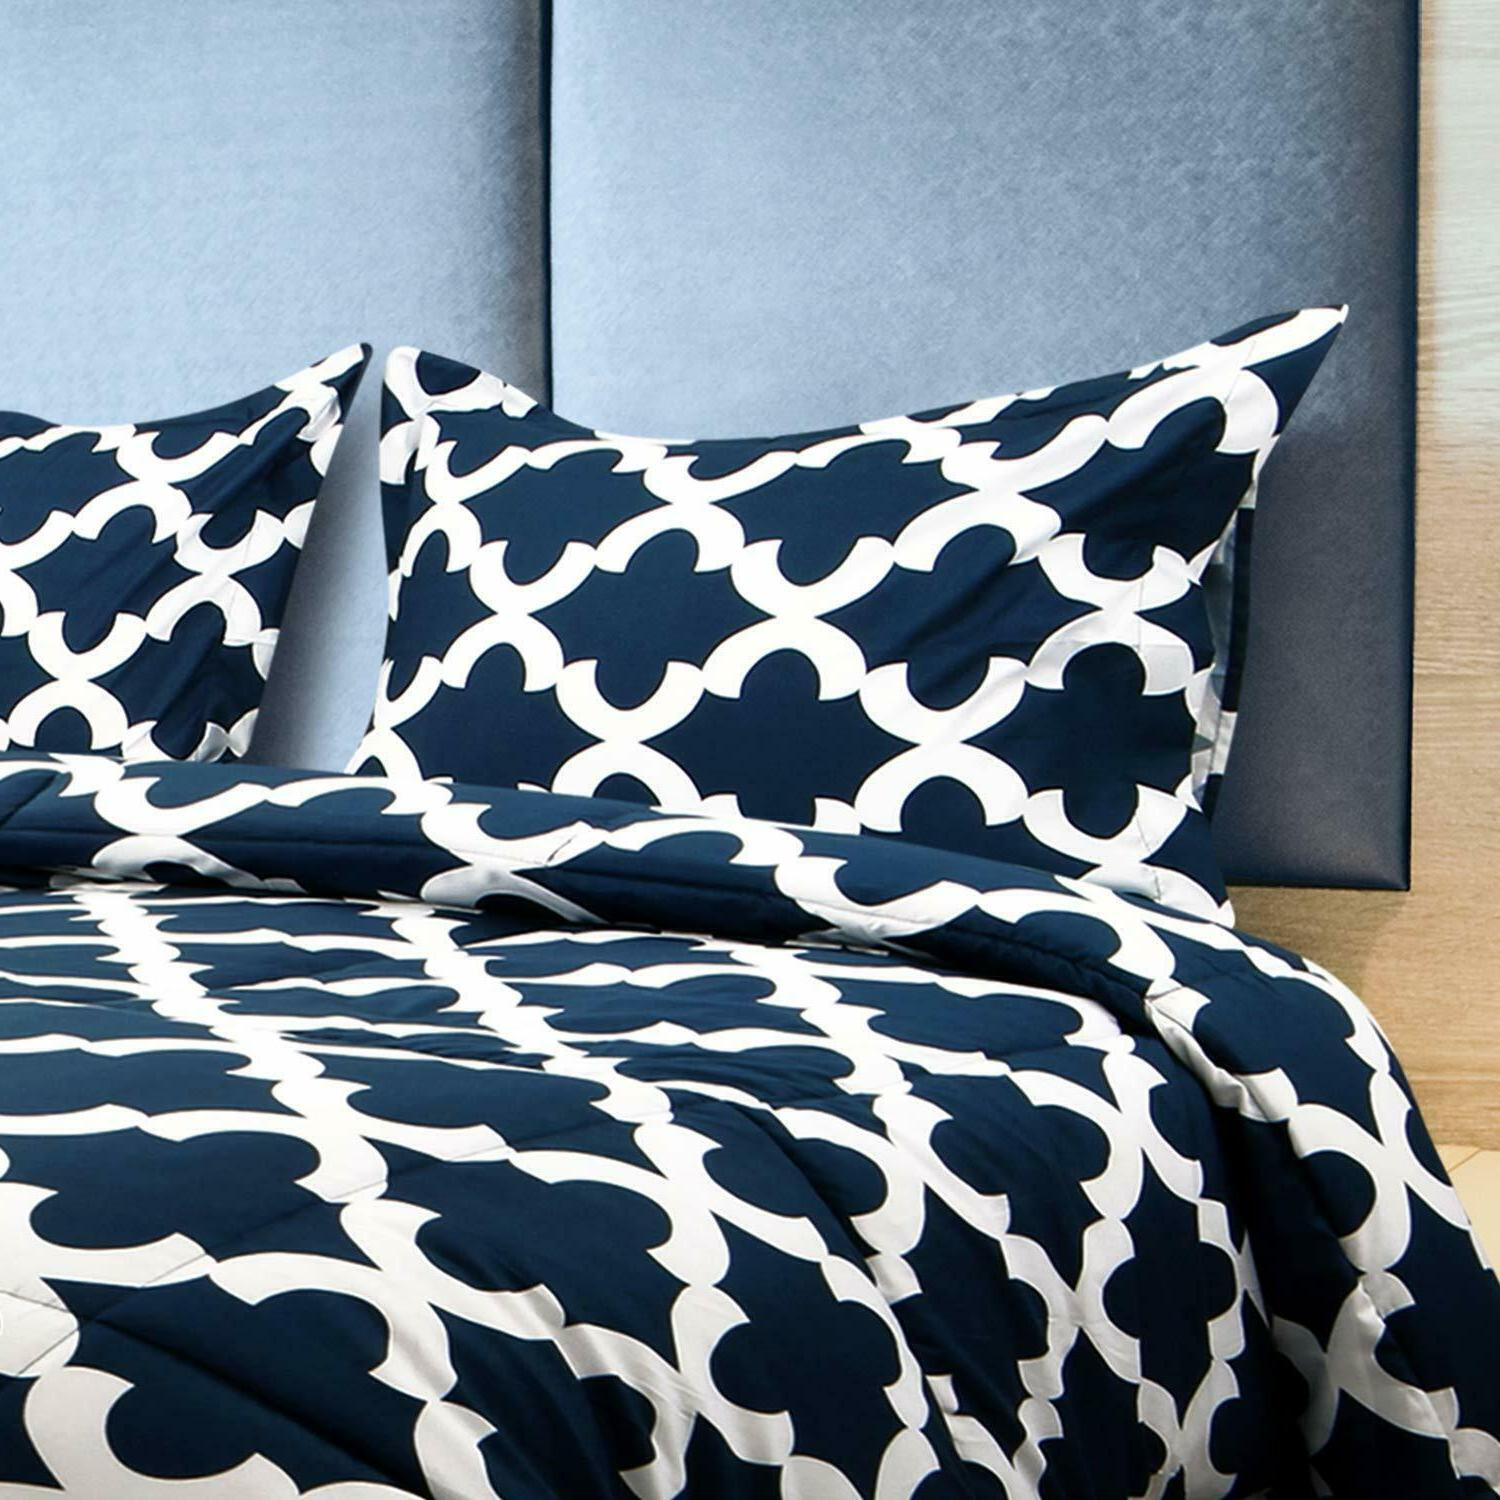 Printed Comforter Set with 2 Pillow Shams Brushed Microfiber